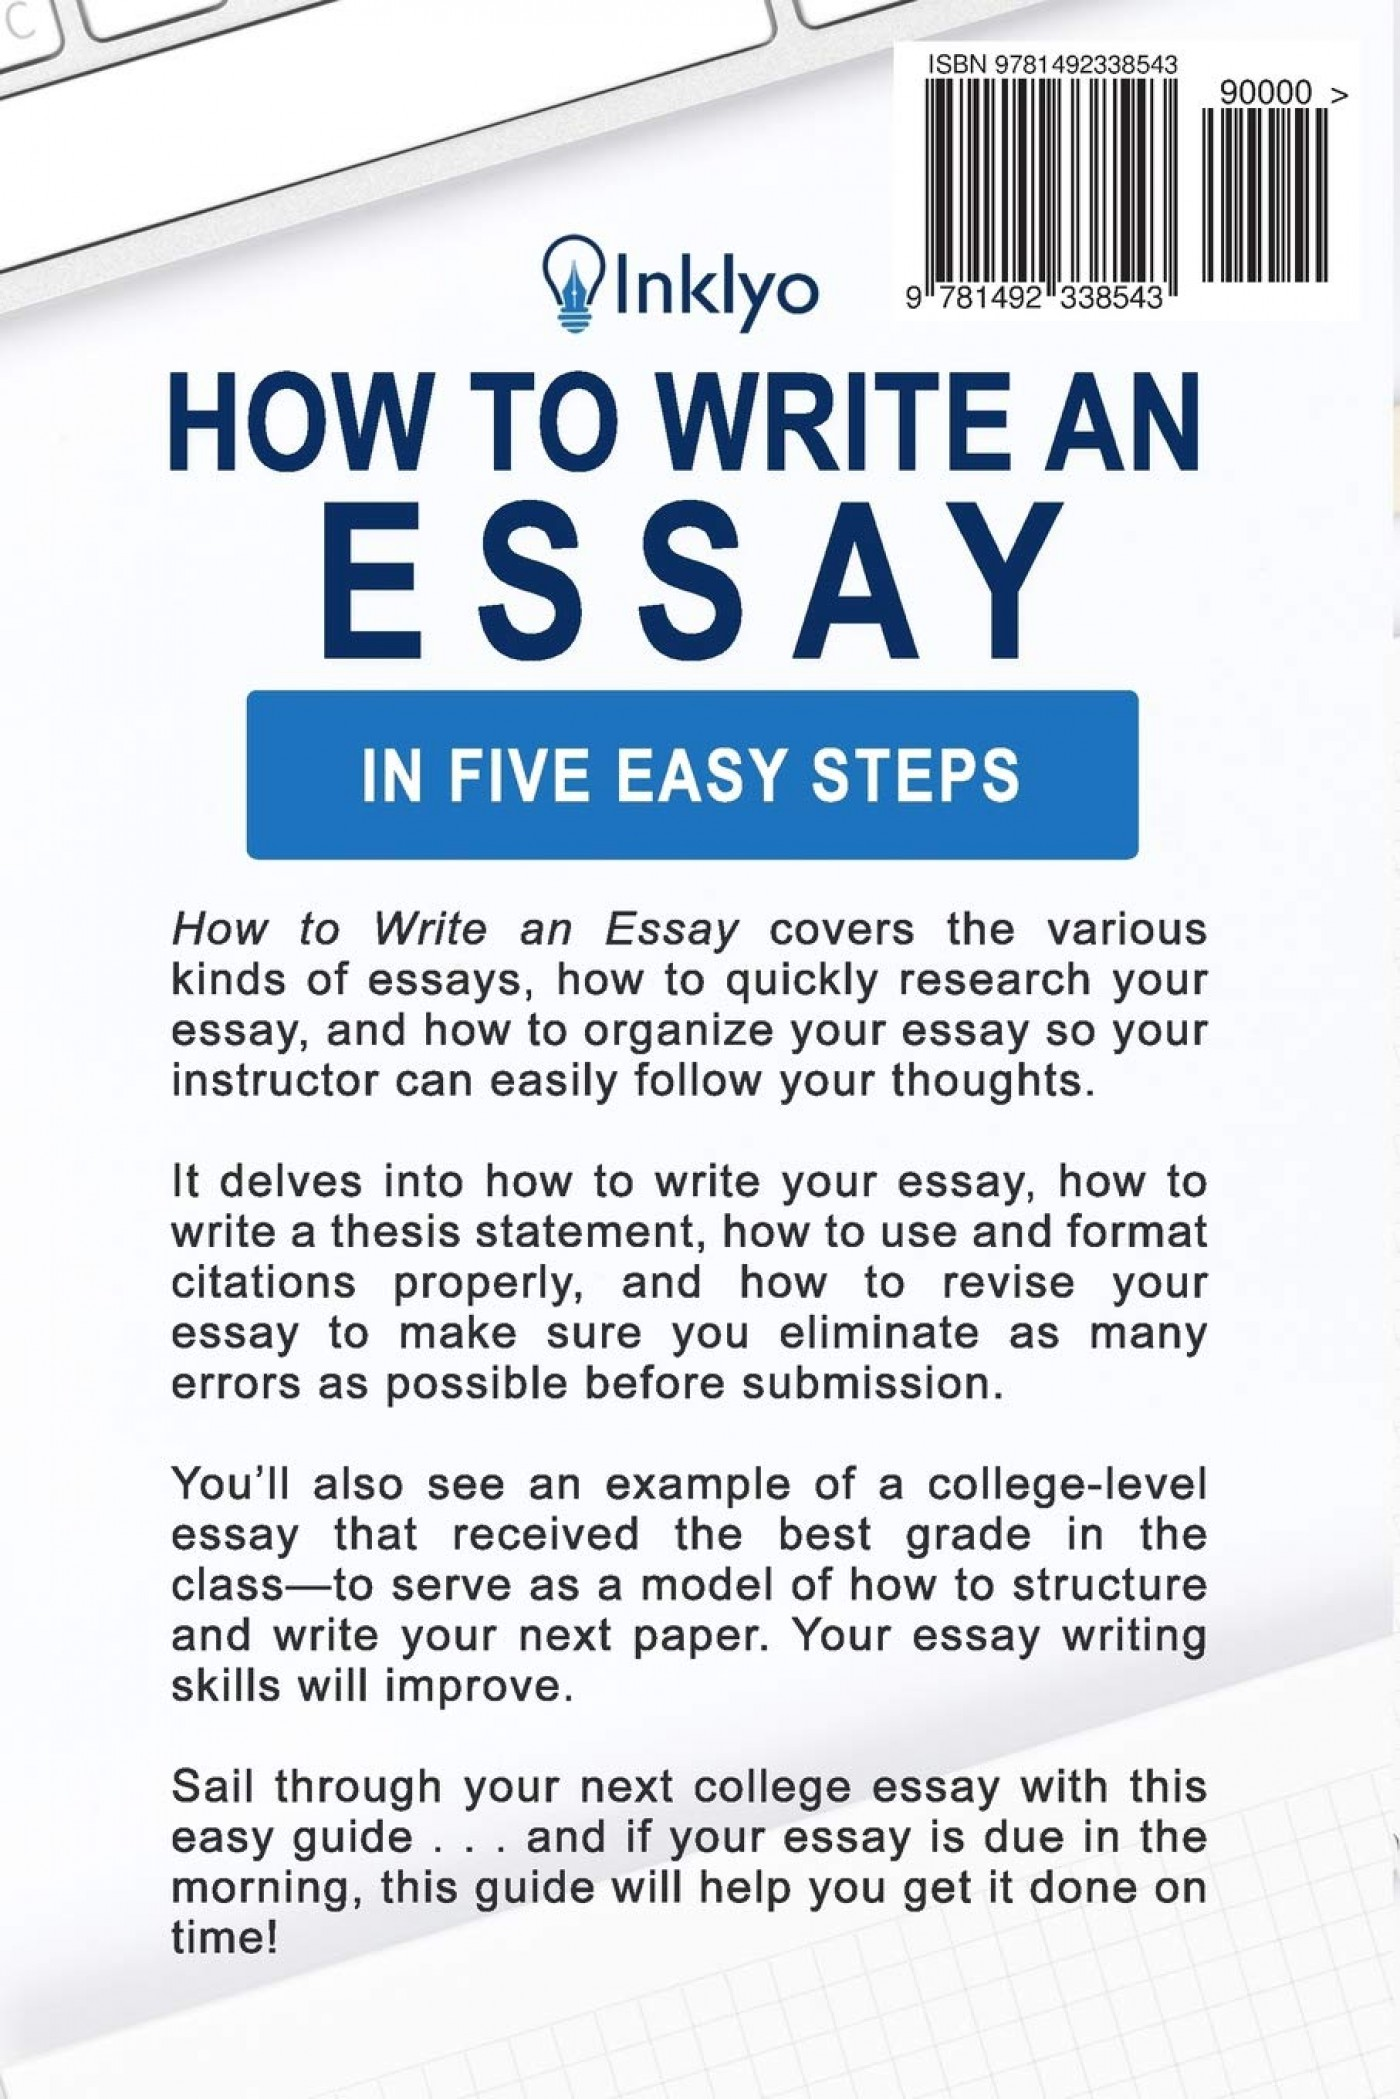 002 How To Write An Essay Example Shocking In Mla Format 2018 Introduction For College Paper Apa 1400